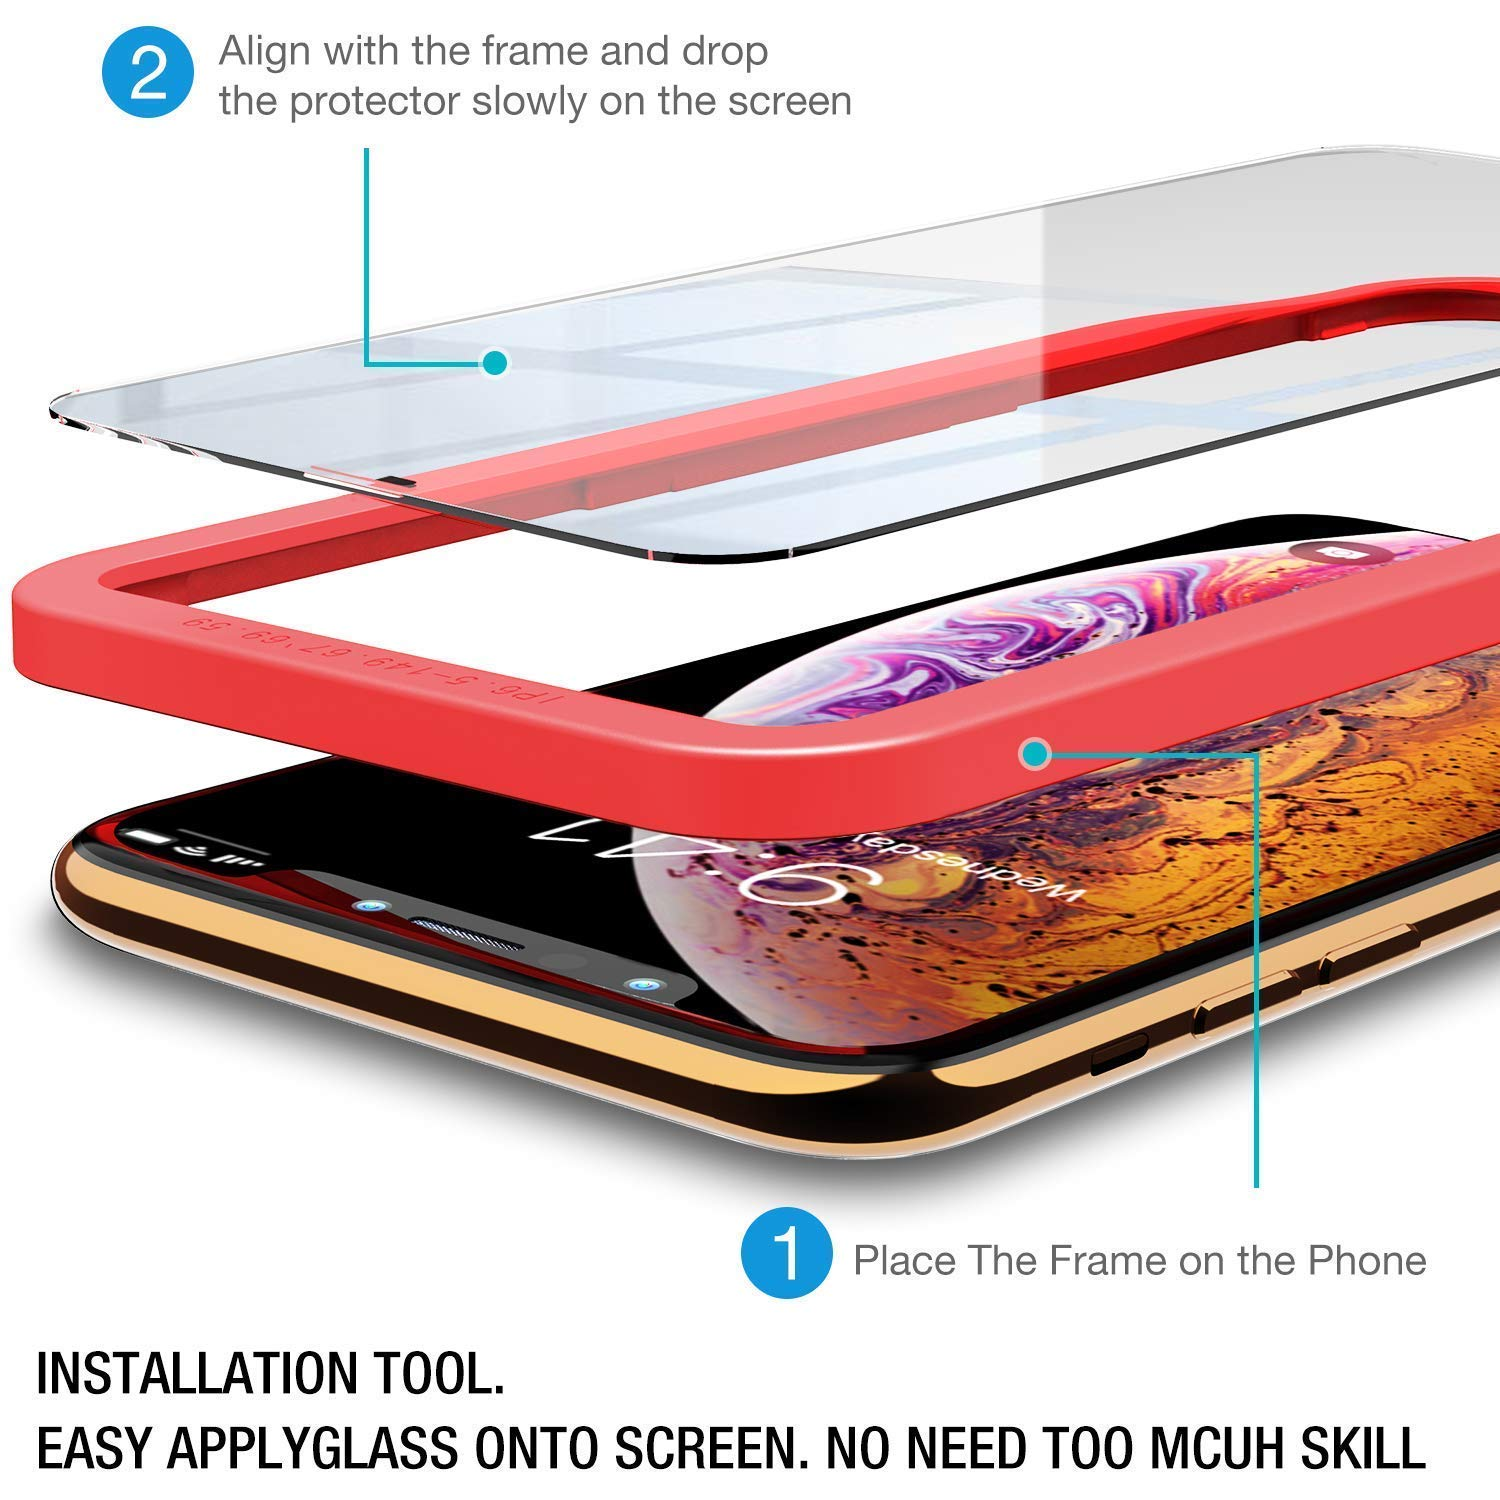 Does Apple's iphone need tempered glass screen protector?